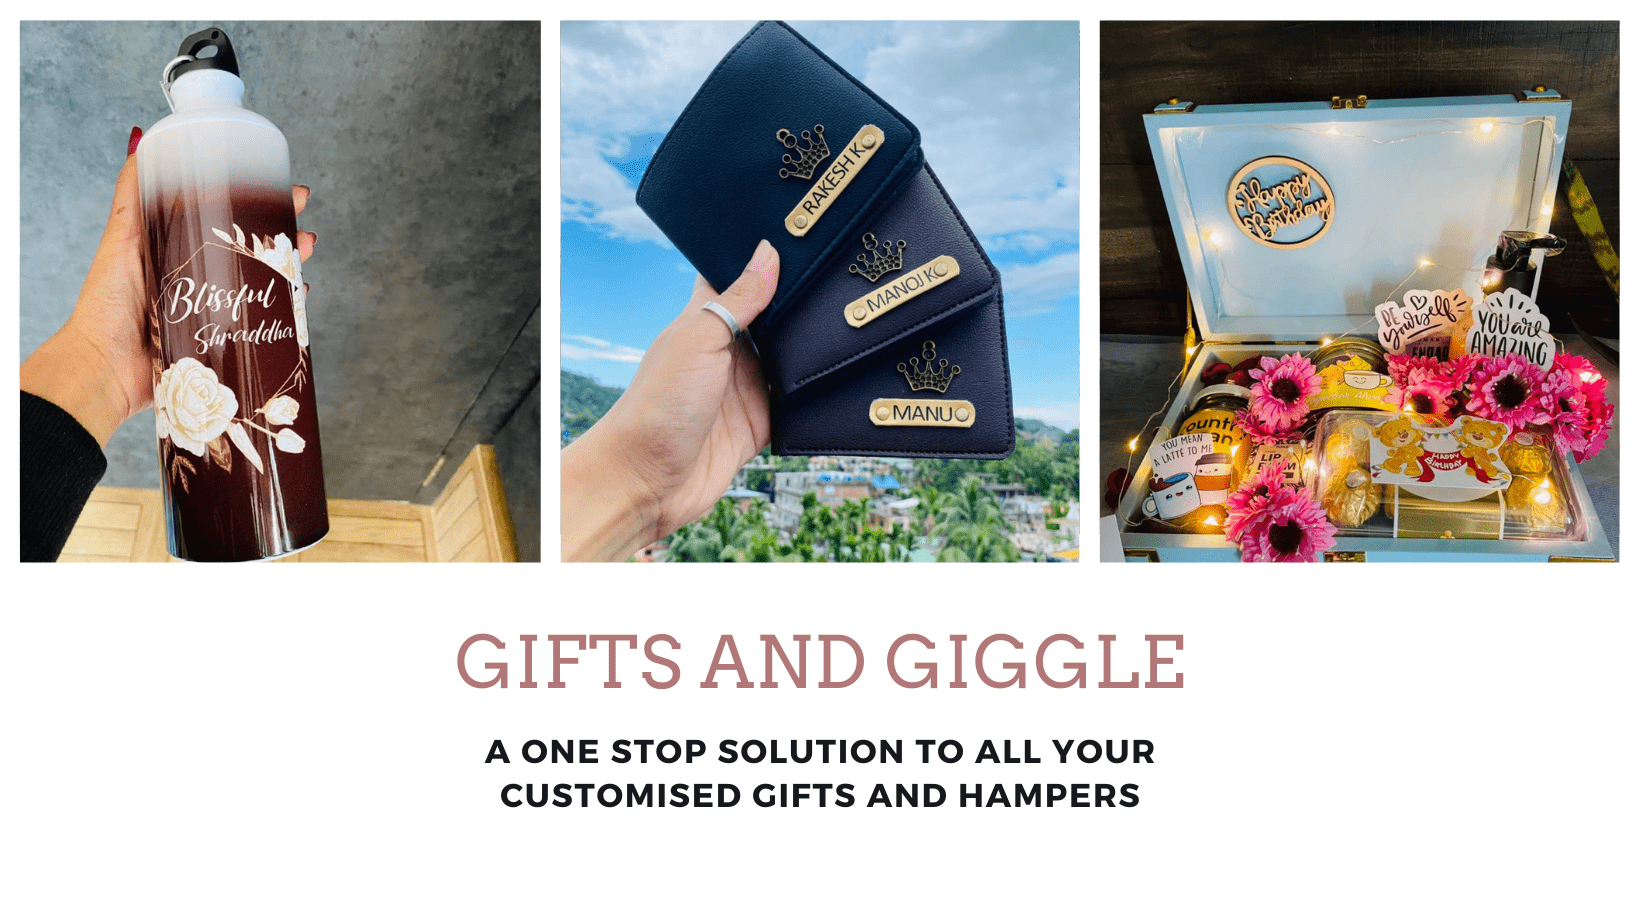 Gifts and Giggle